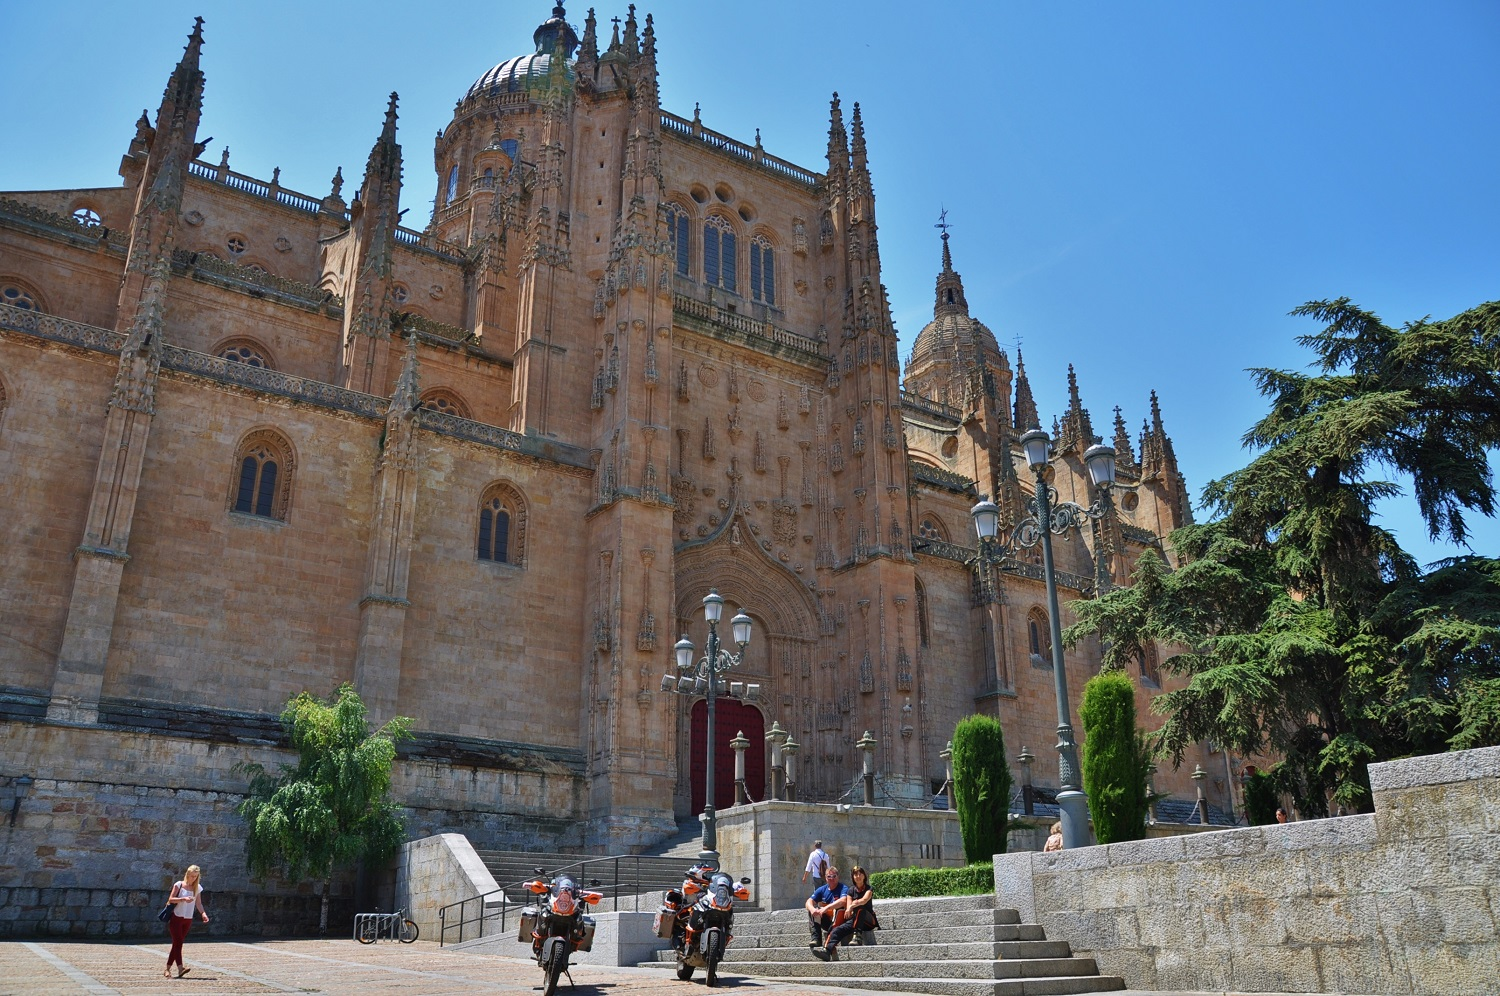 Vor der Kathedrale in Salamanca | In front of the cathedral in Salamanca